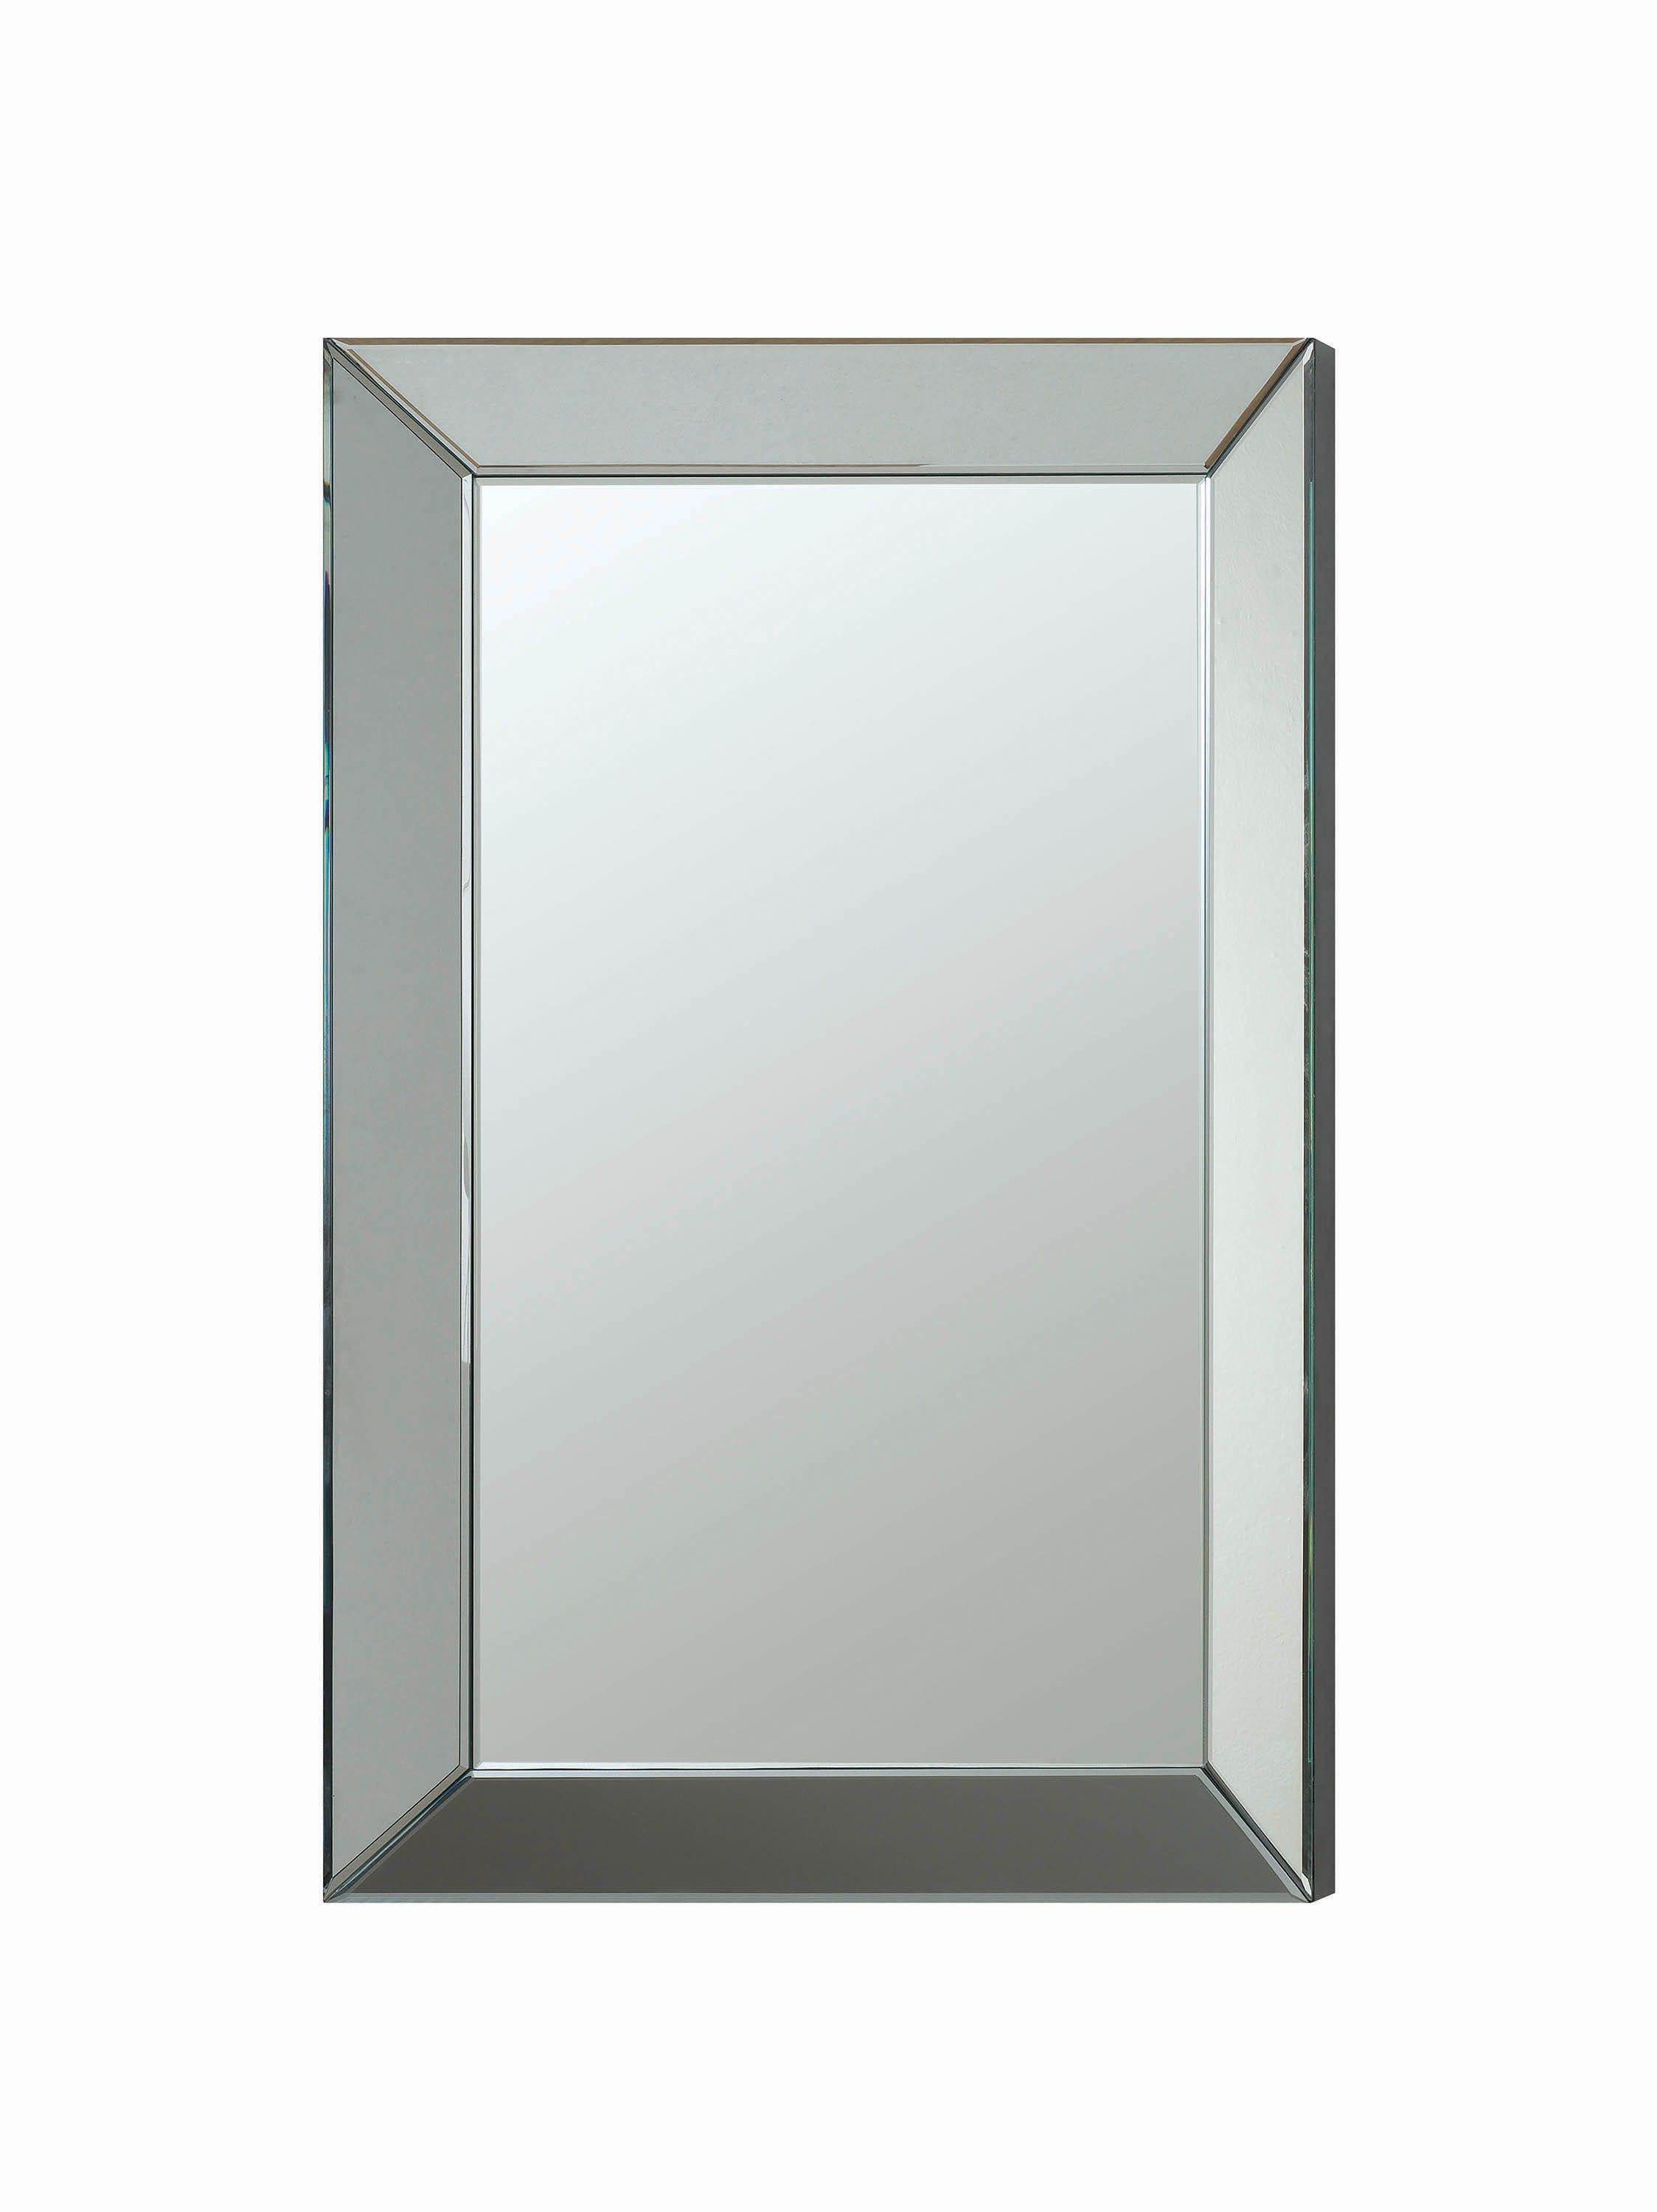 Transitional Rectangle Accent Mirrorcoaster Intended For Rectangle Accent Mirrors (View 9 of 20)